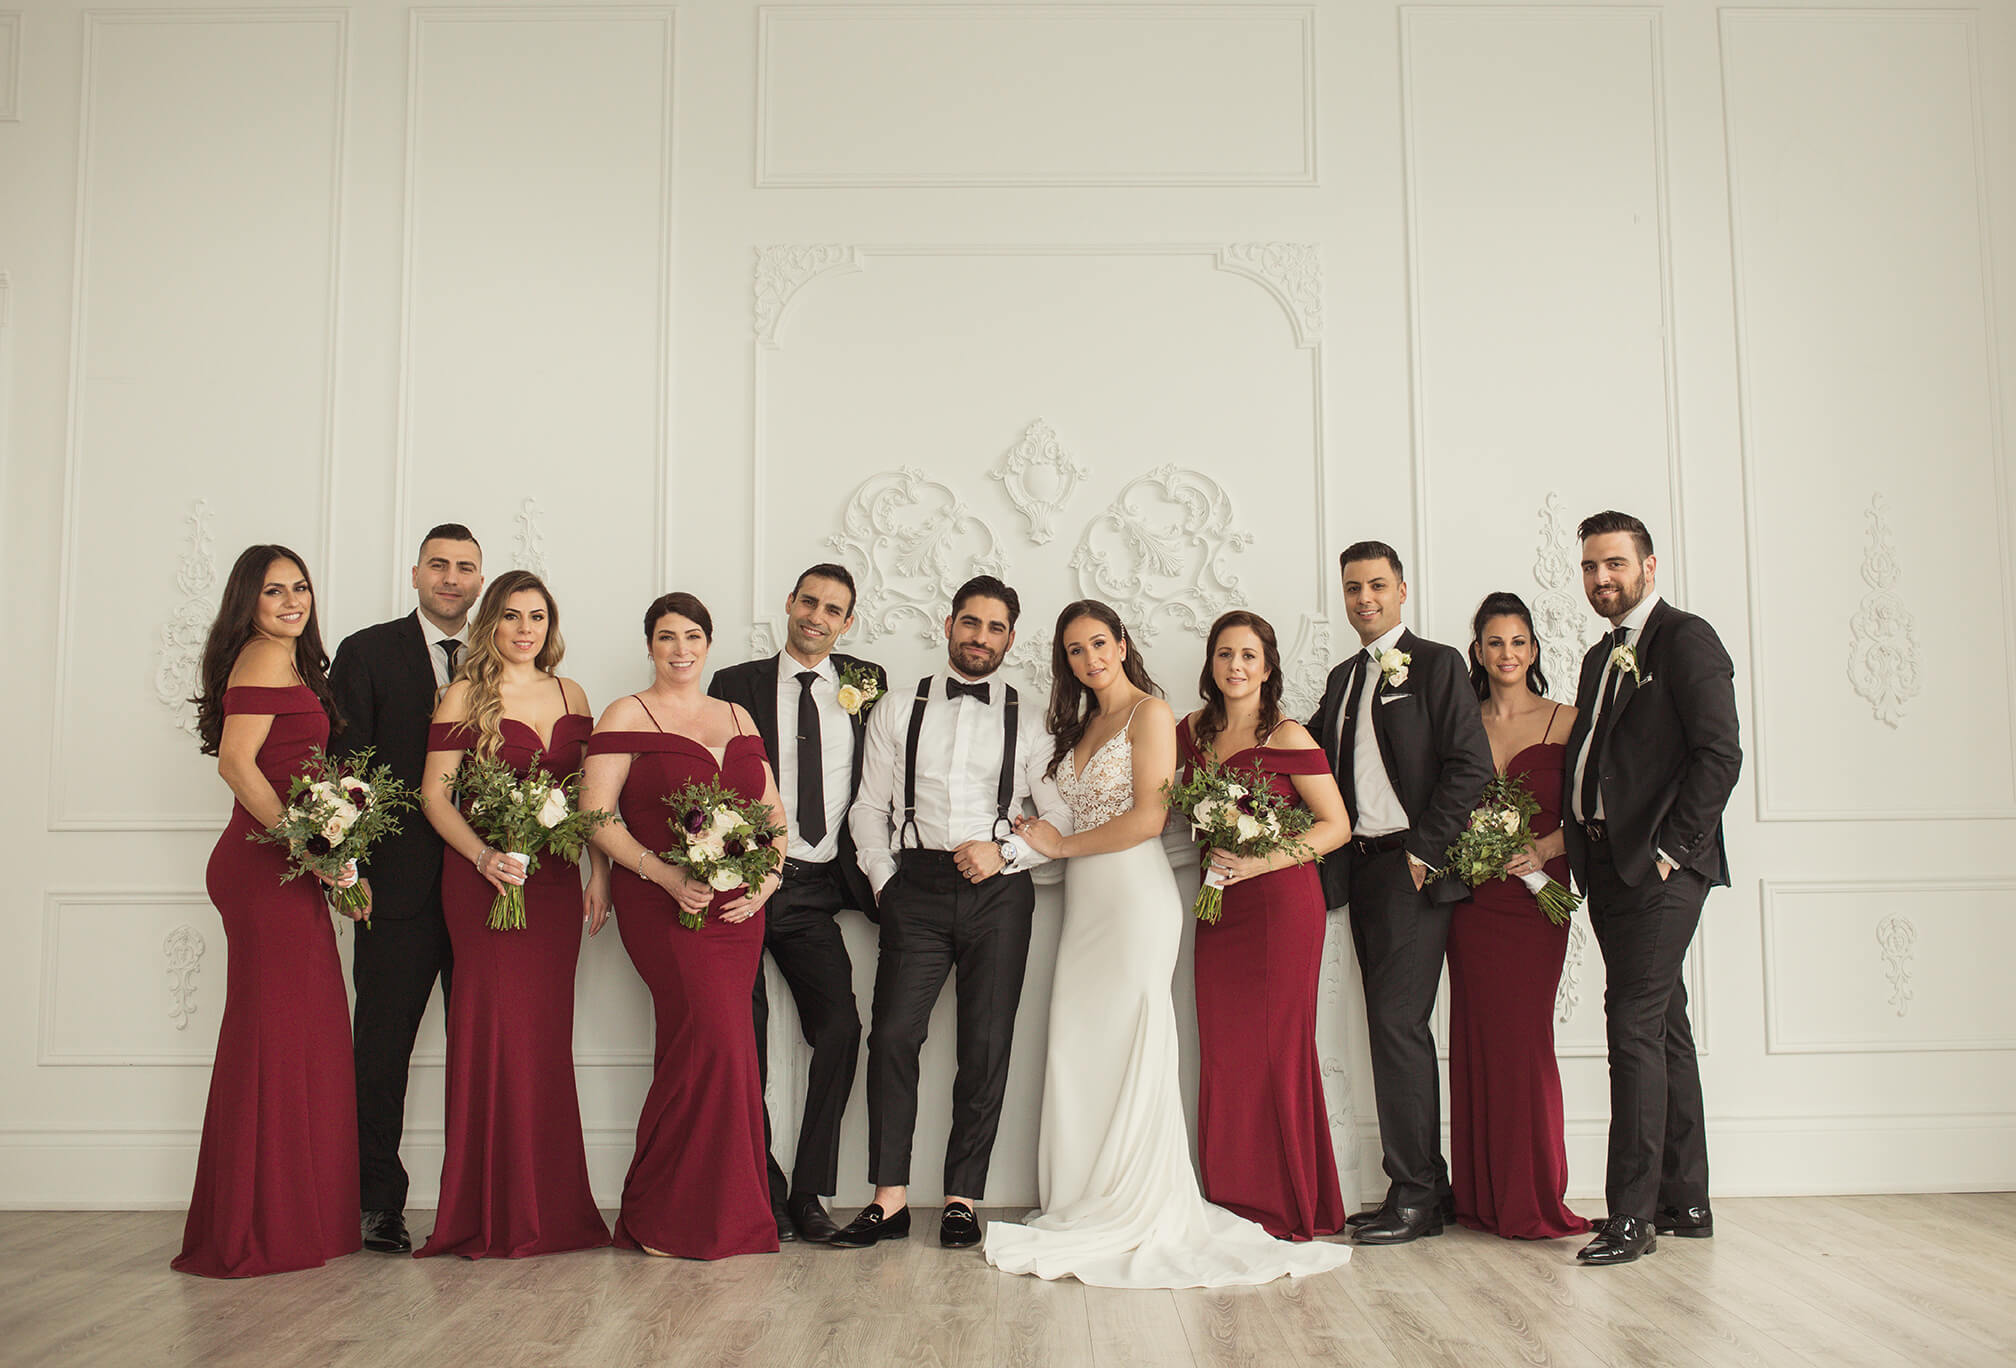 bridal party photography at mint room studios toronto